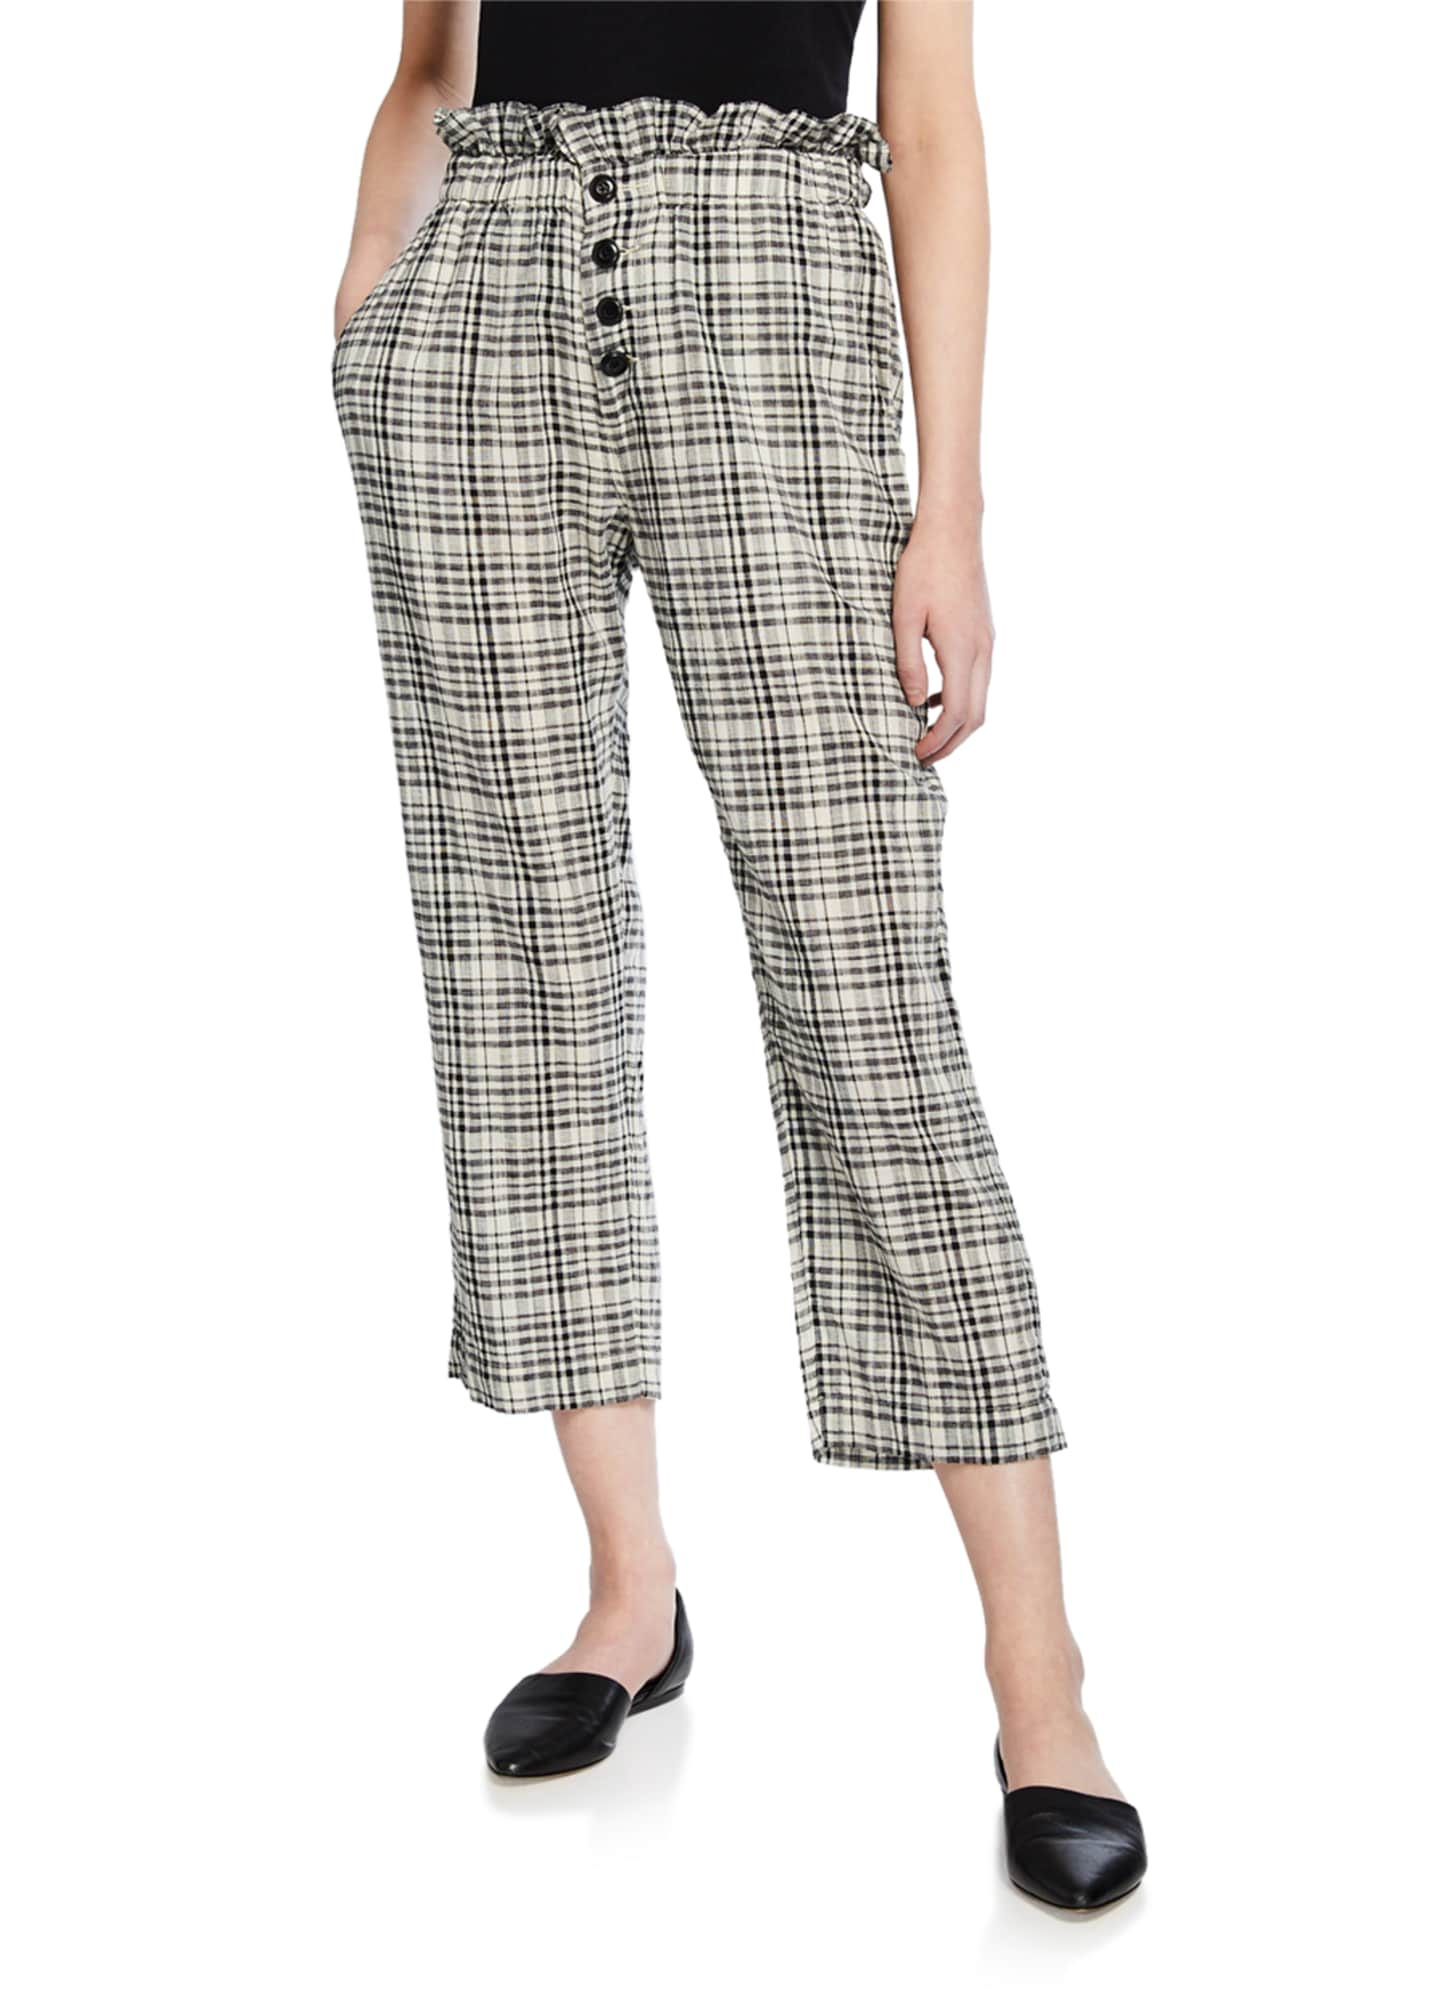 The Great The Gunny Sack Check Trousers